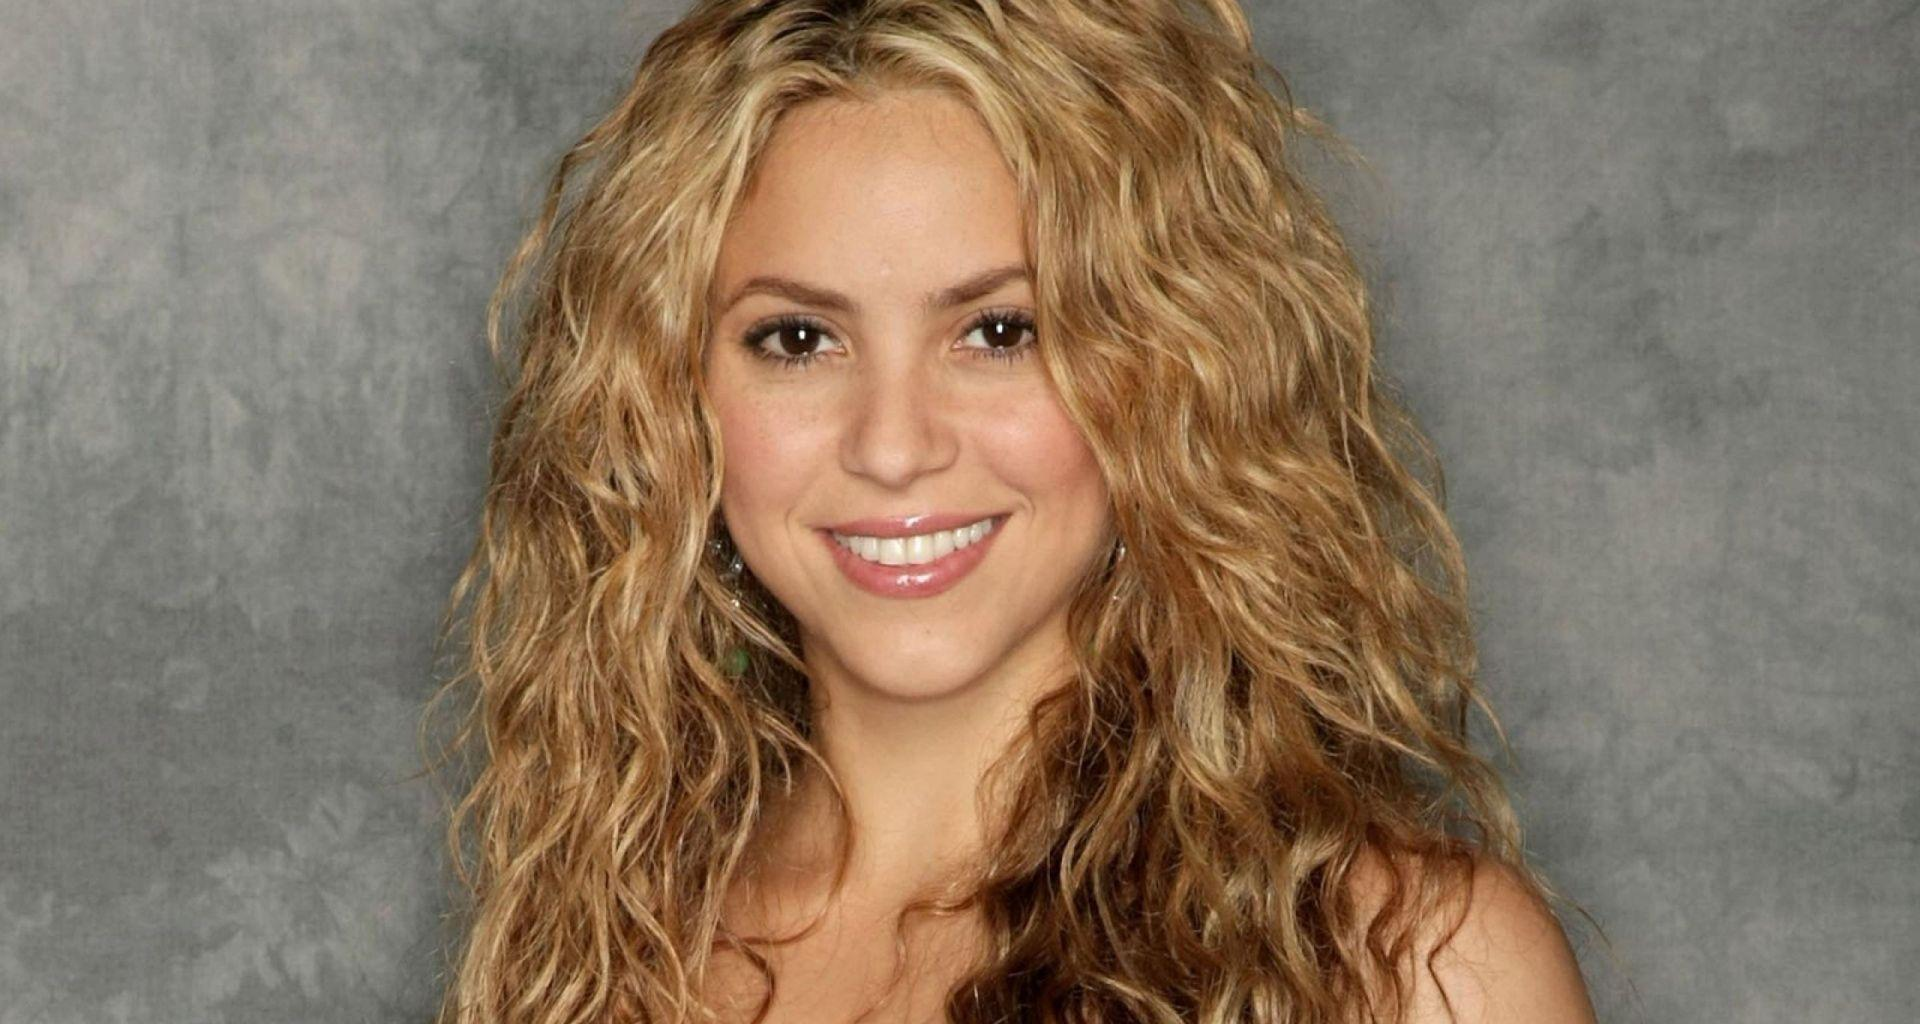 Shakira Looks Incredible At 42 In Self-Designed Pink Tasseled Bathing Suit - Check Out The Clip!